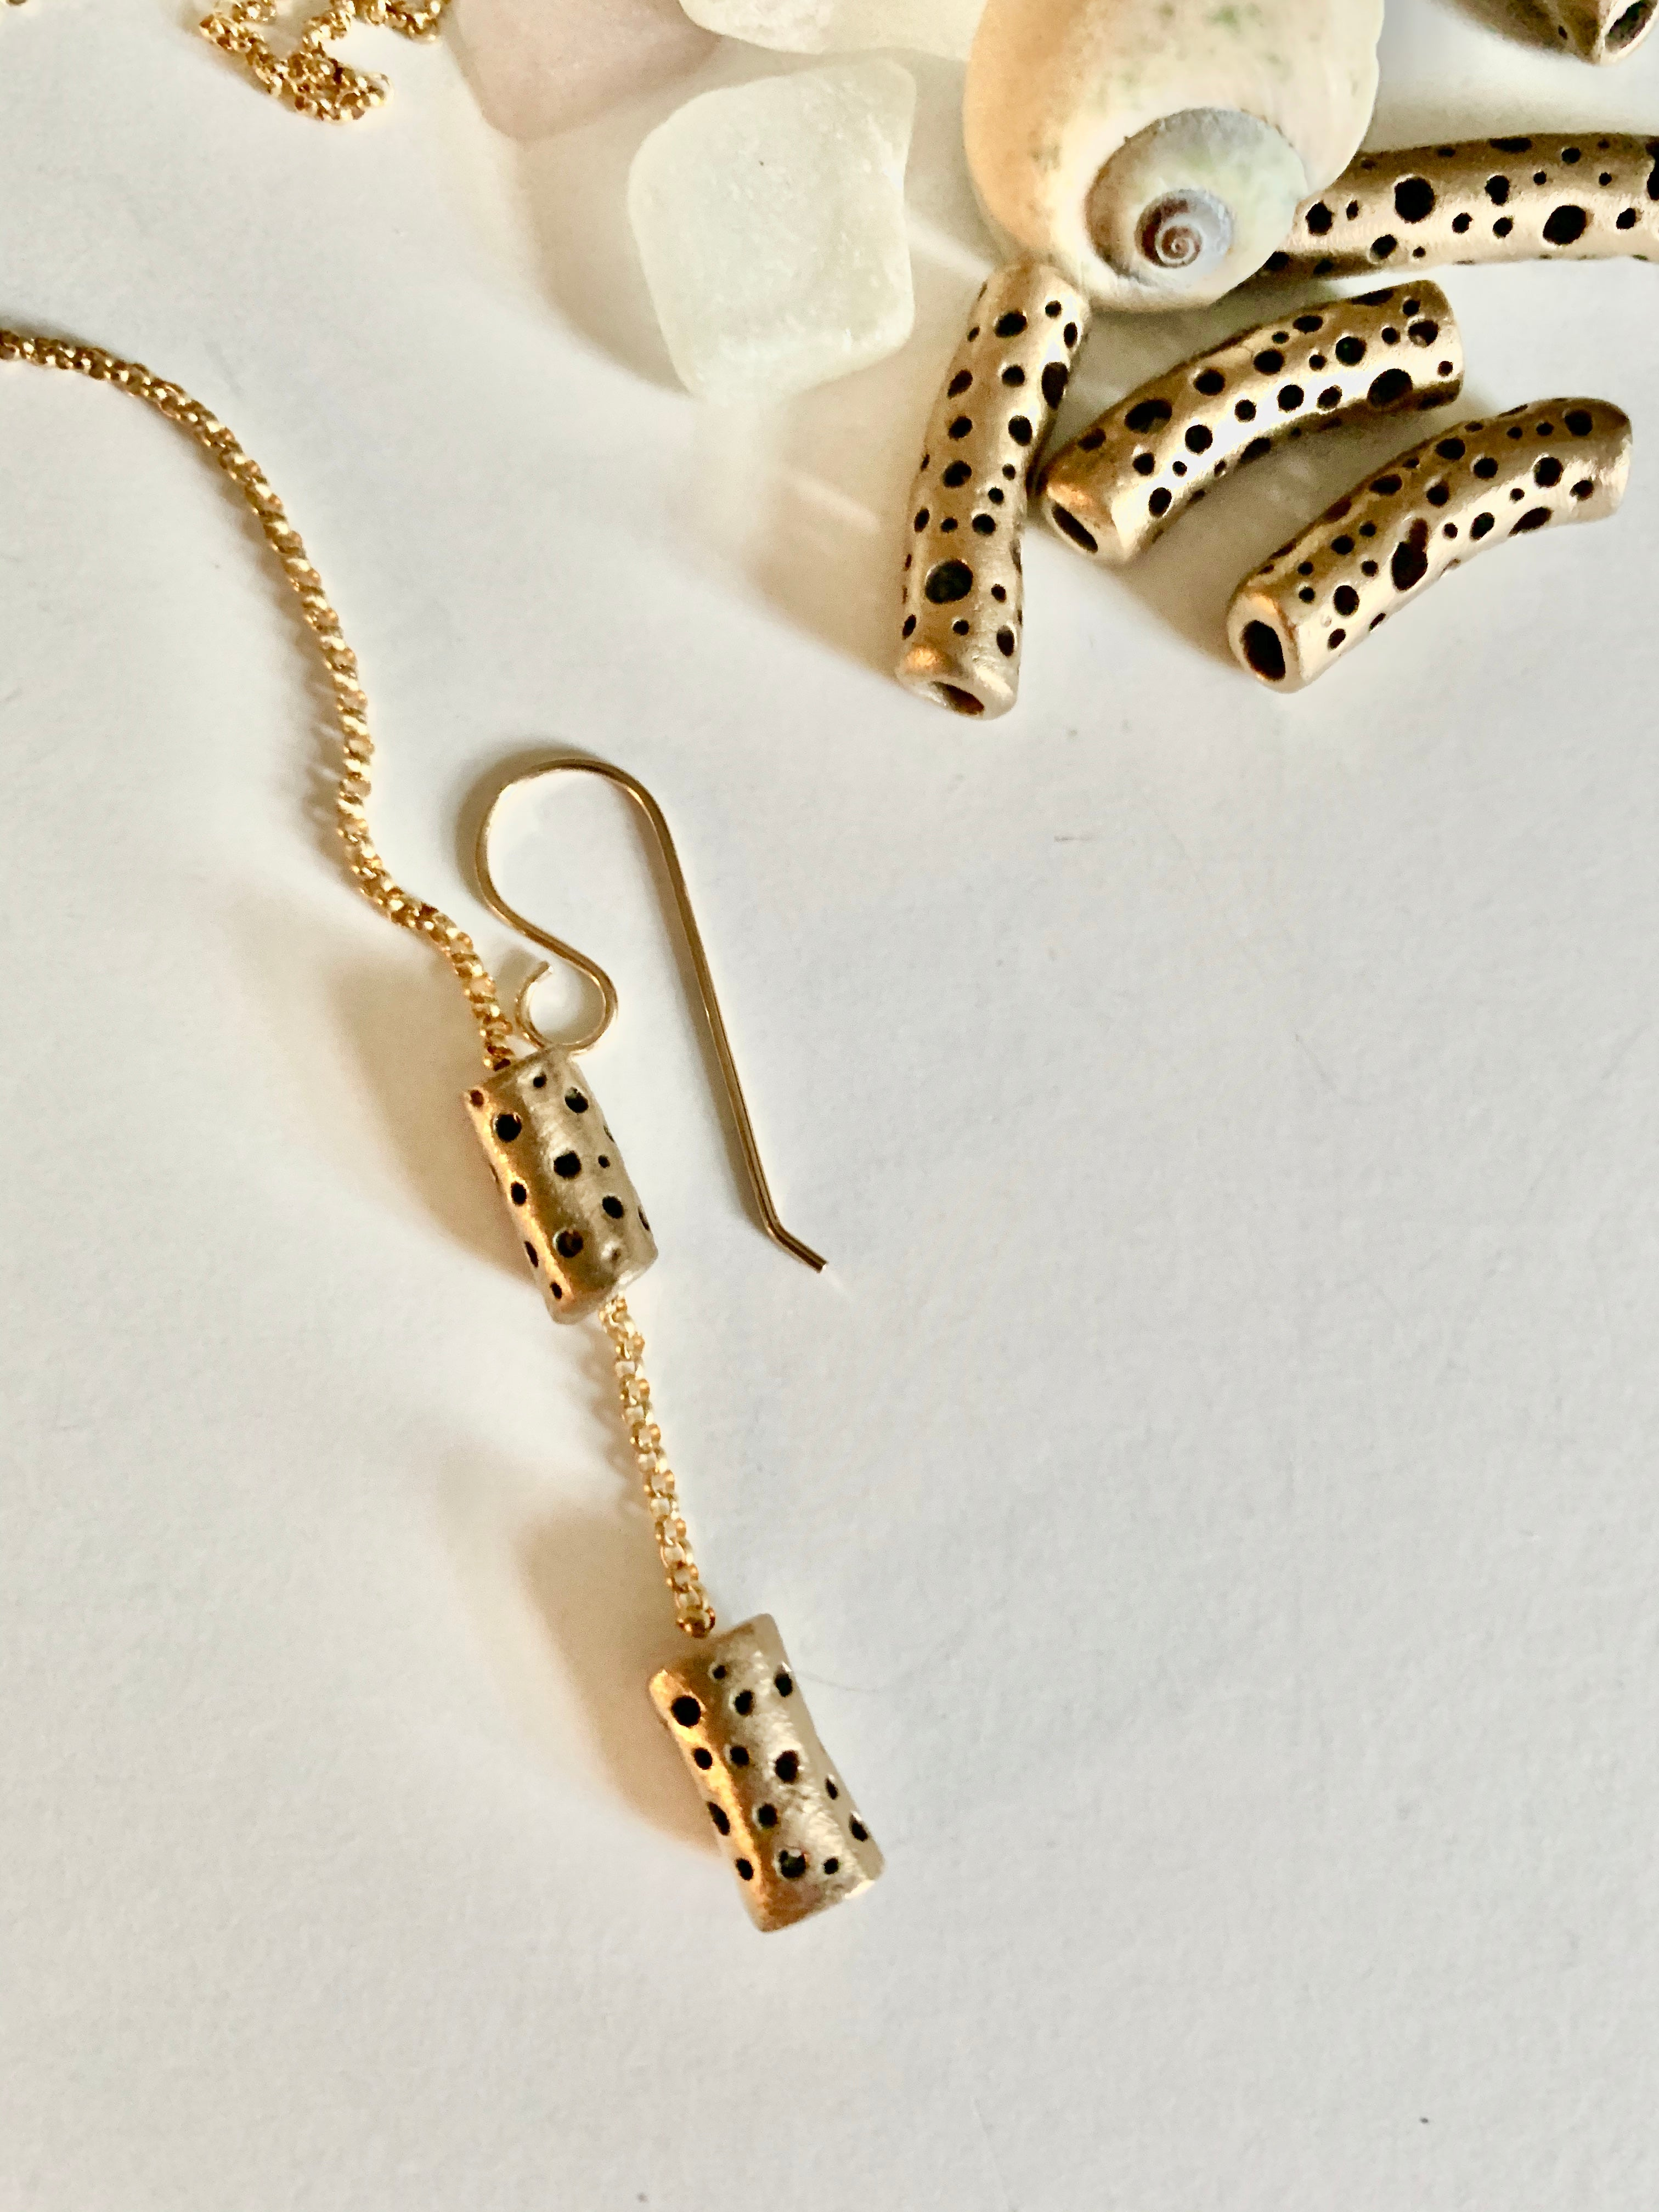 Bronze bead with gold chain hand crafted earrings